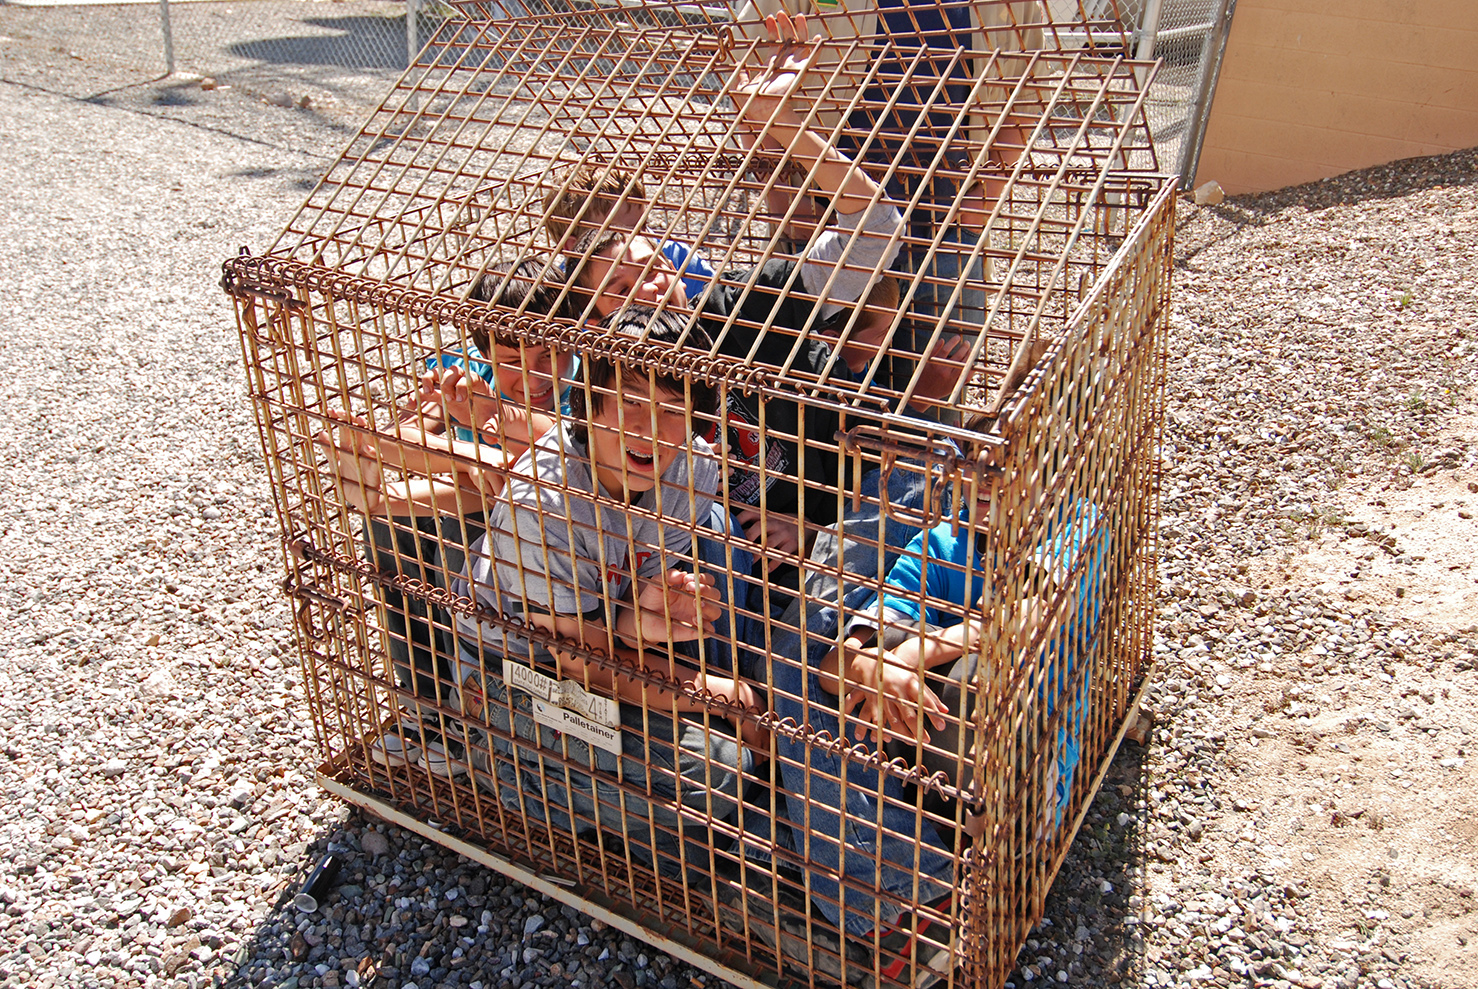 How many scouts can you fit inside a big iron cage/box you find in the desert?